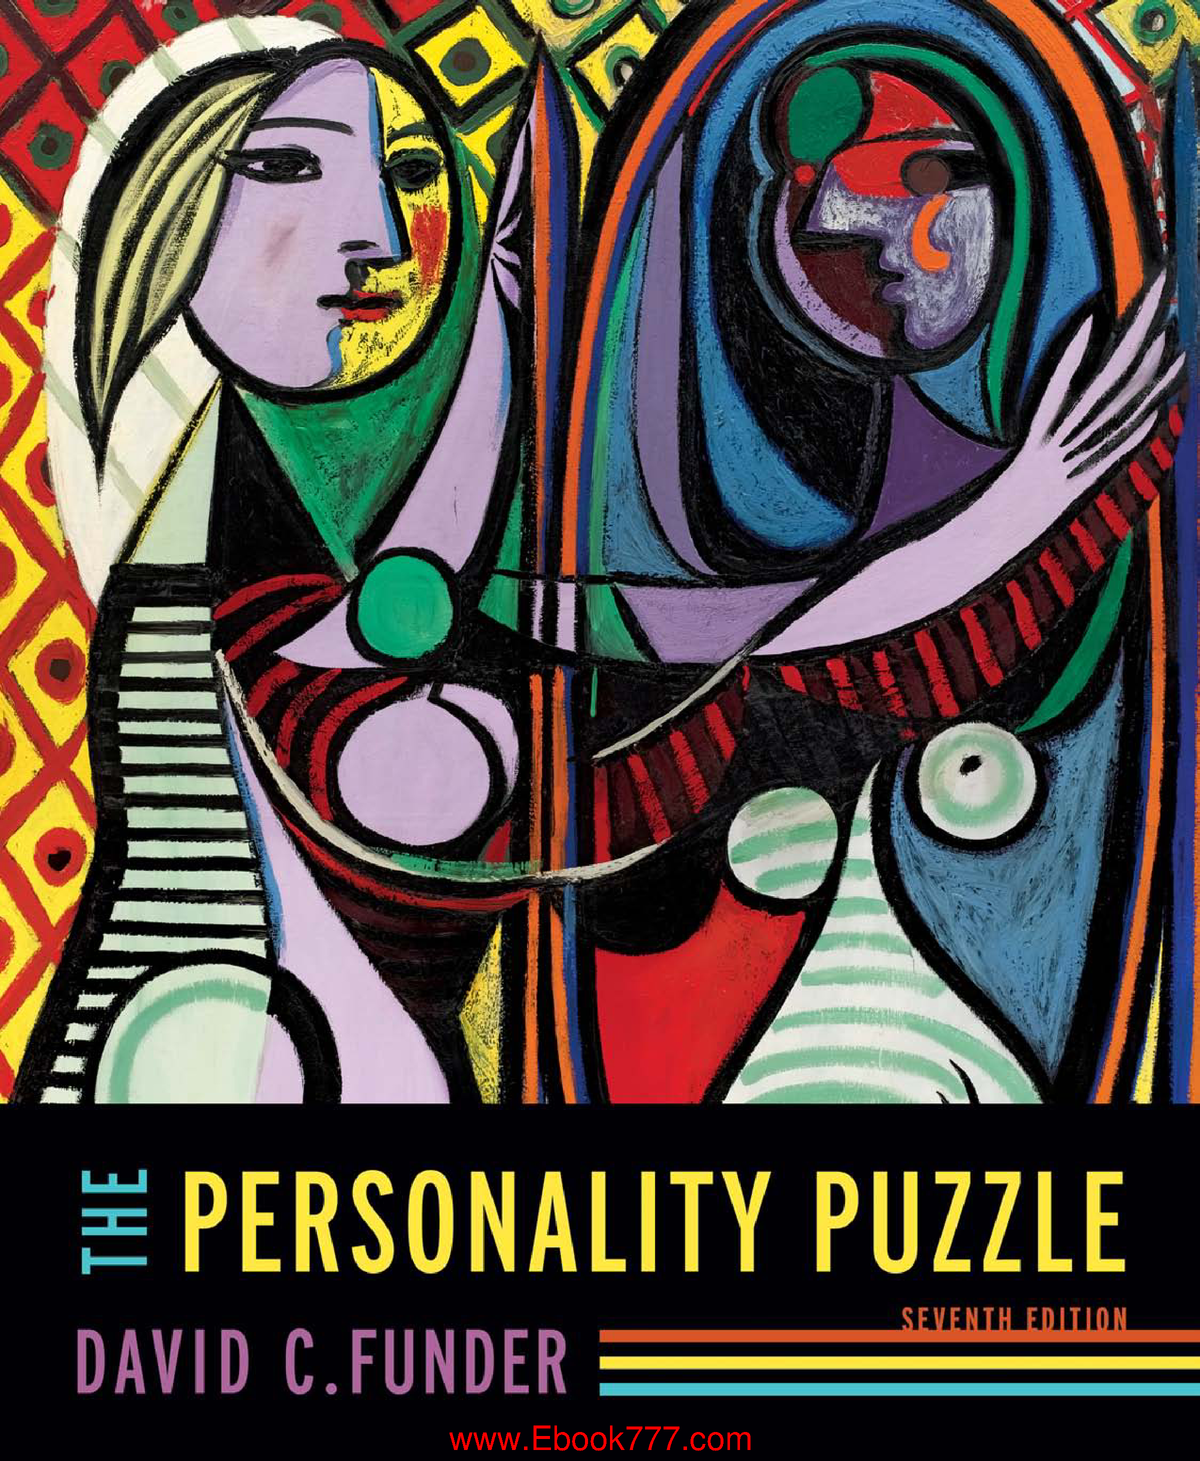 the personality puzzle 5th edition pdf free